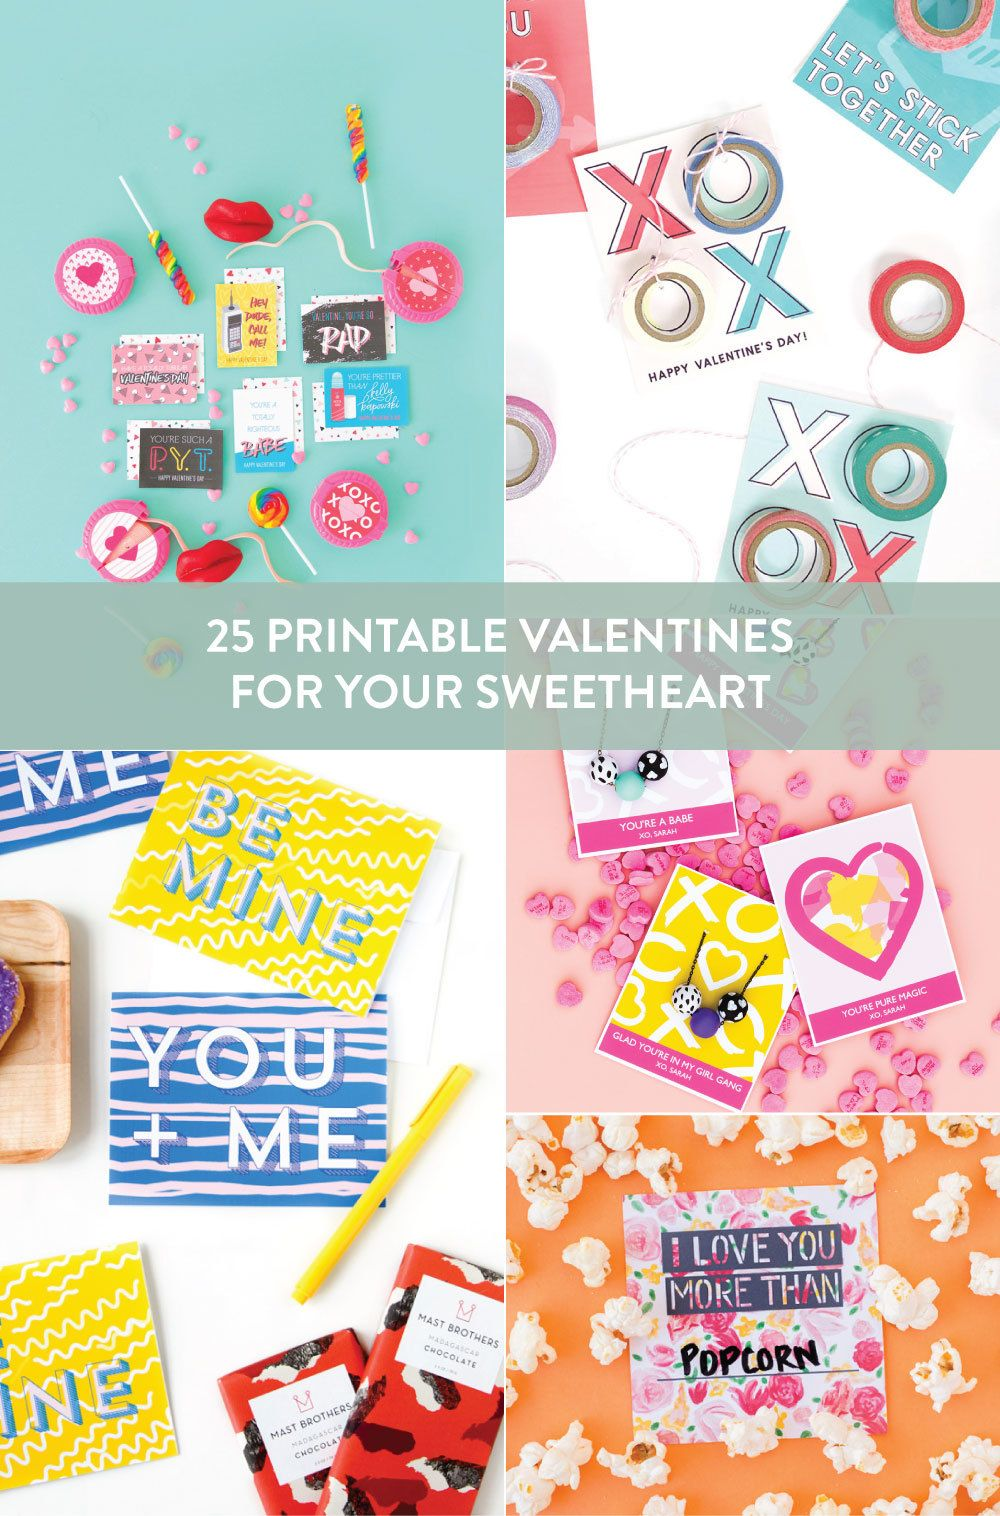 Skip the Store-Bought: Here are 25 Genuine Valentines for Your Sweetheart